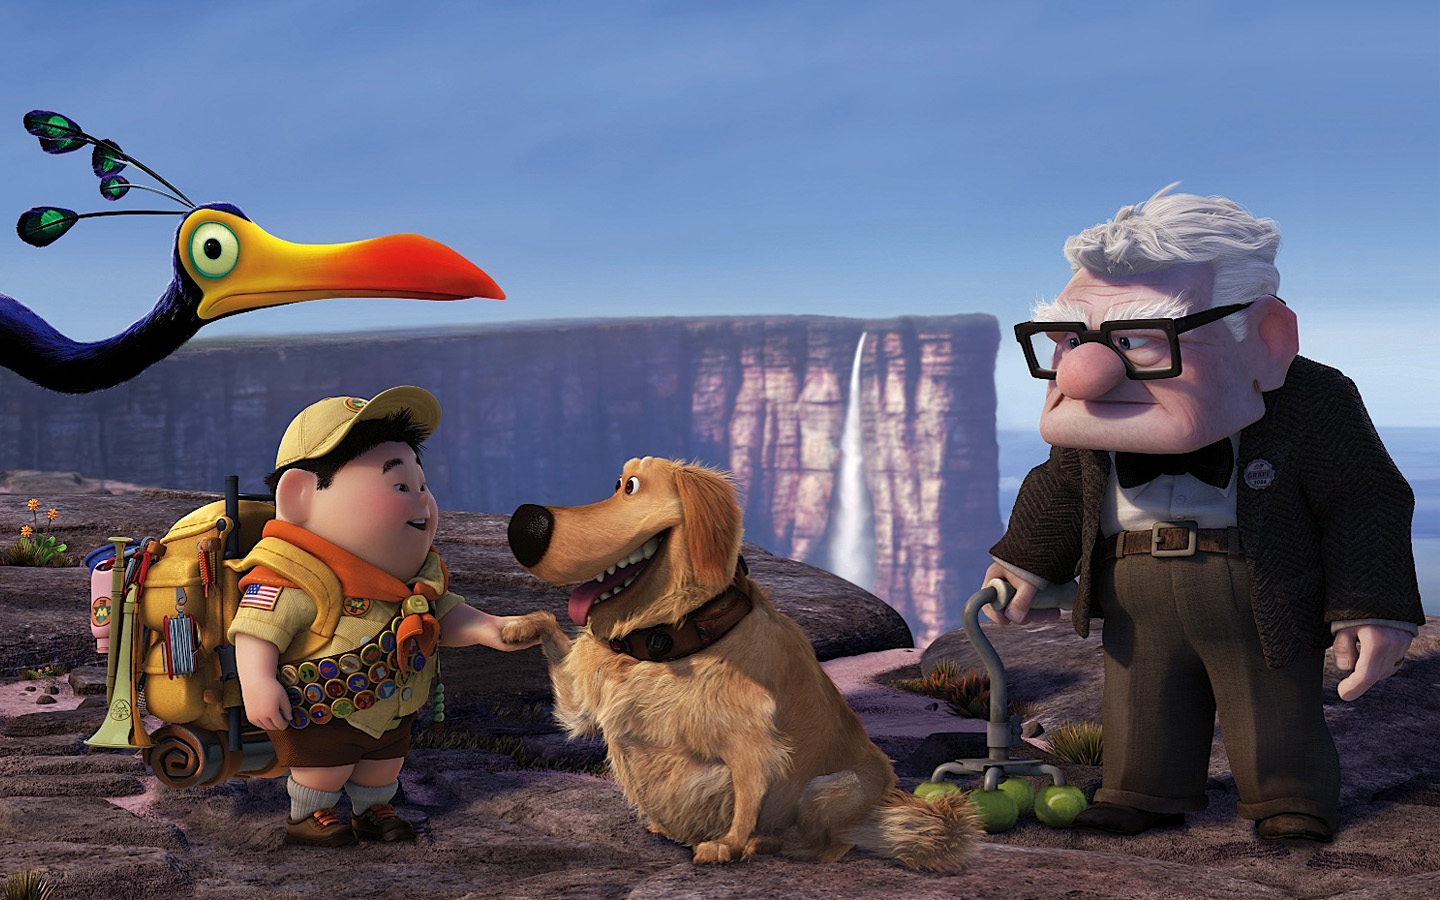 Russell Dug Carl Fredricksen in Pixar's UP 306.52 Kb